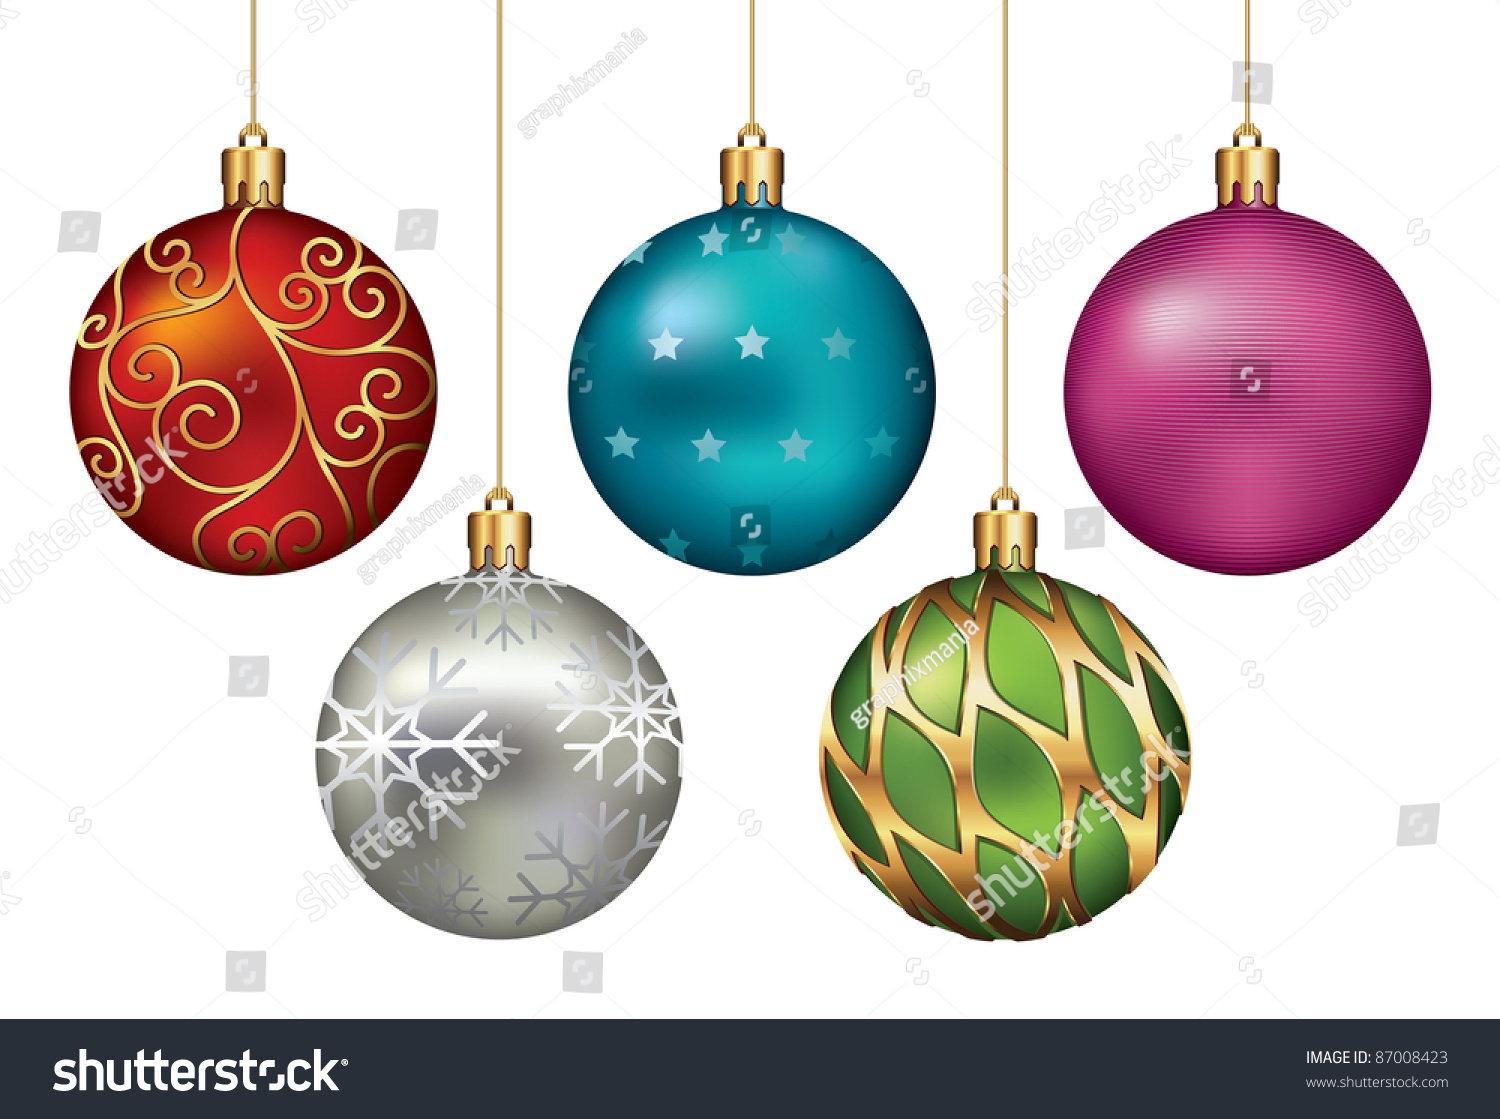 Christmas Ornaments Hanging On Gold Thread. Vector ...